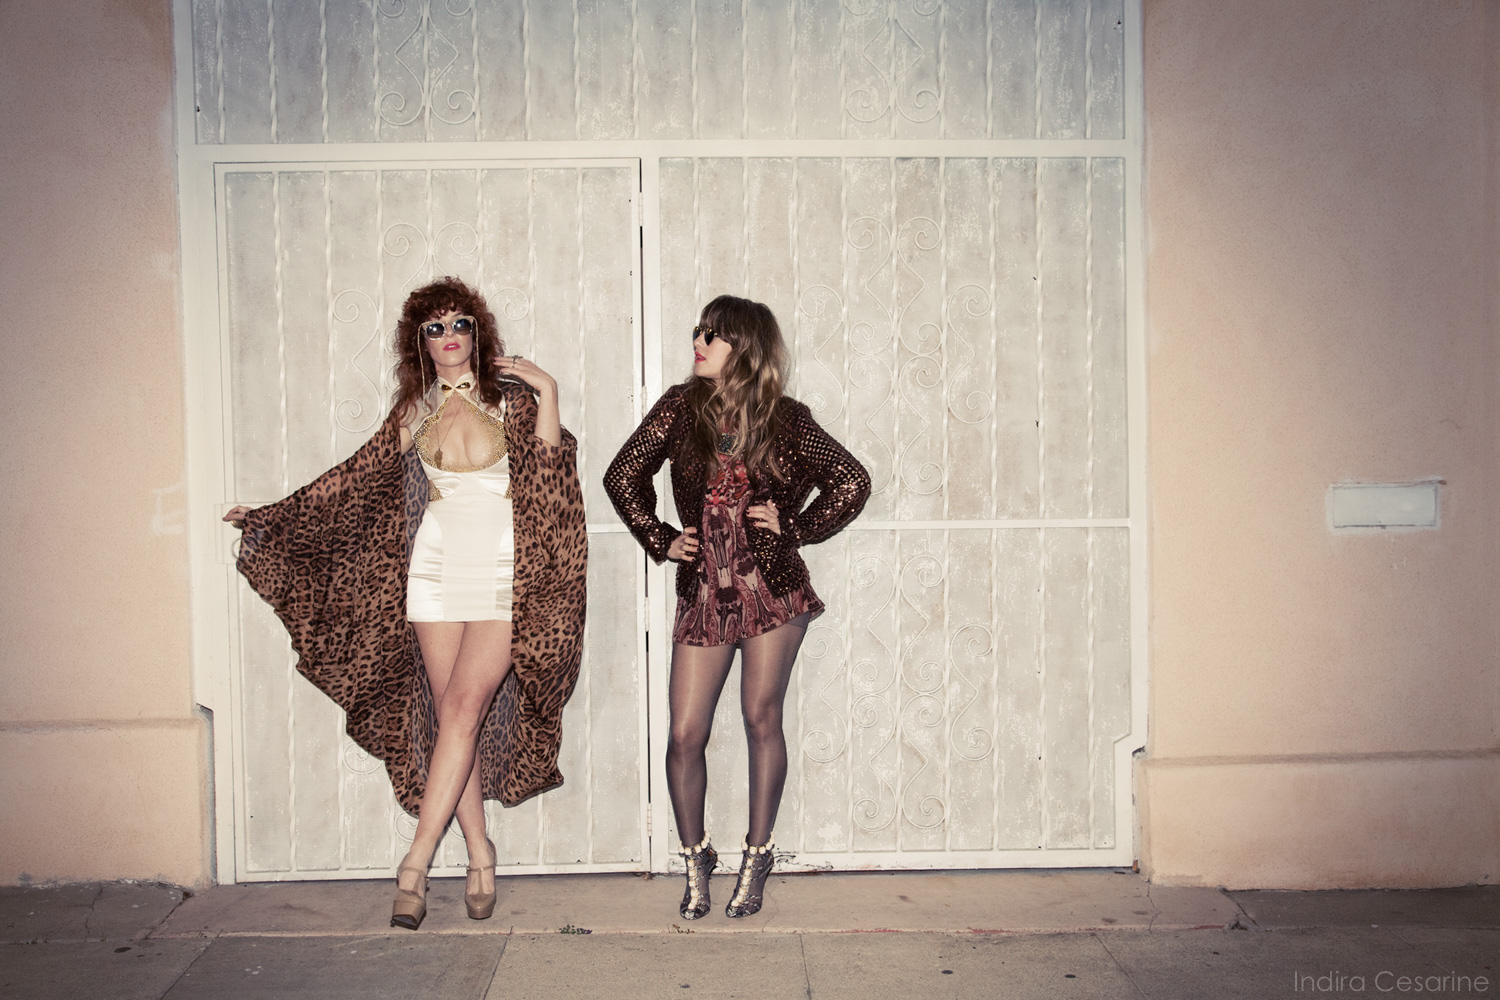 Deap-Vally-Photography-by-Indira-Cesarine-005.jpg